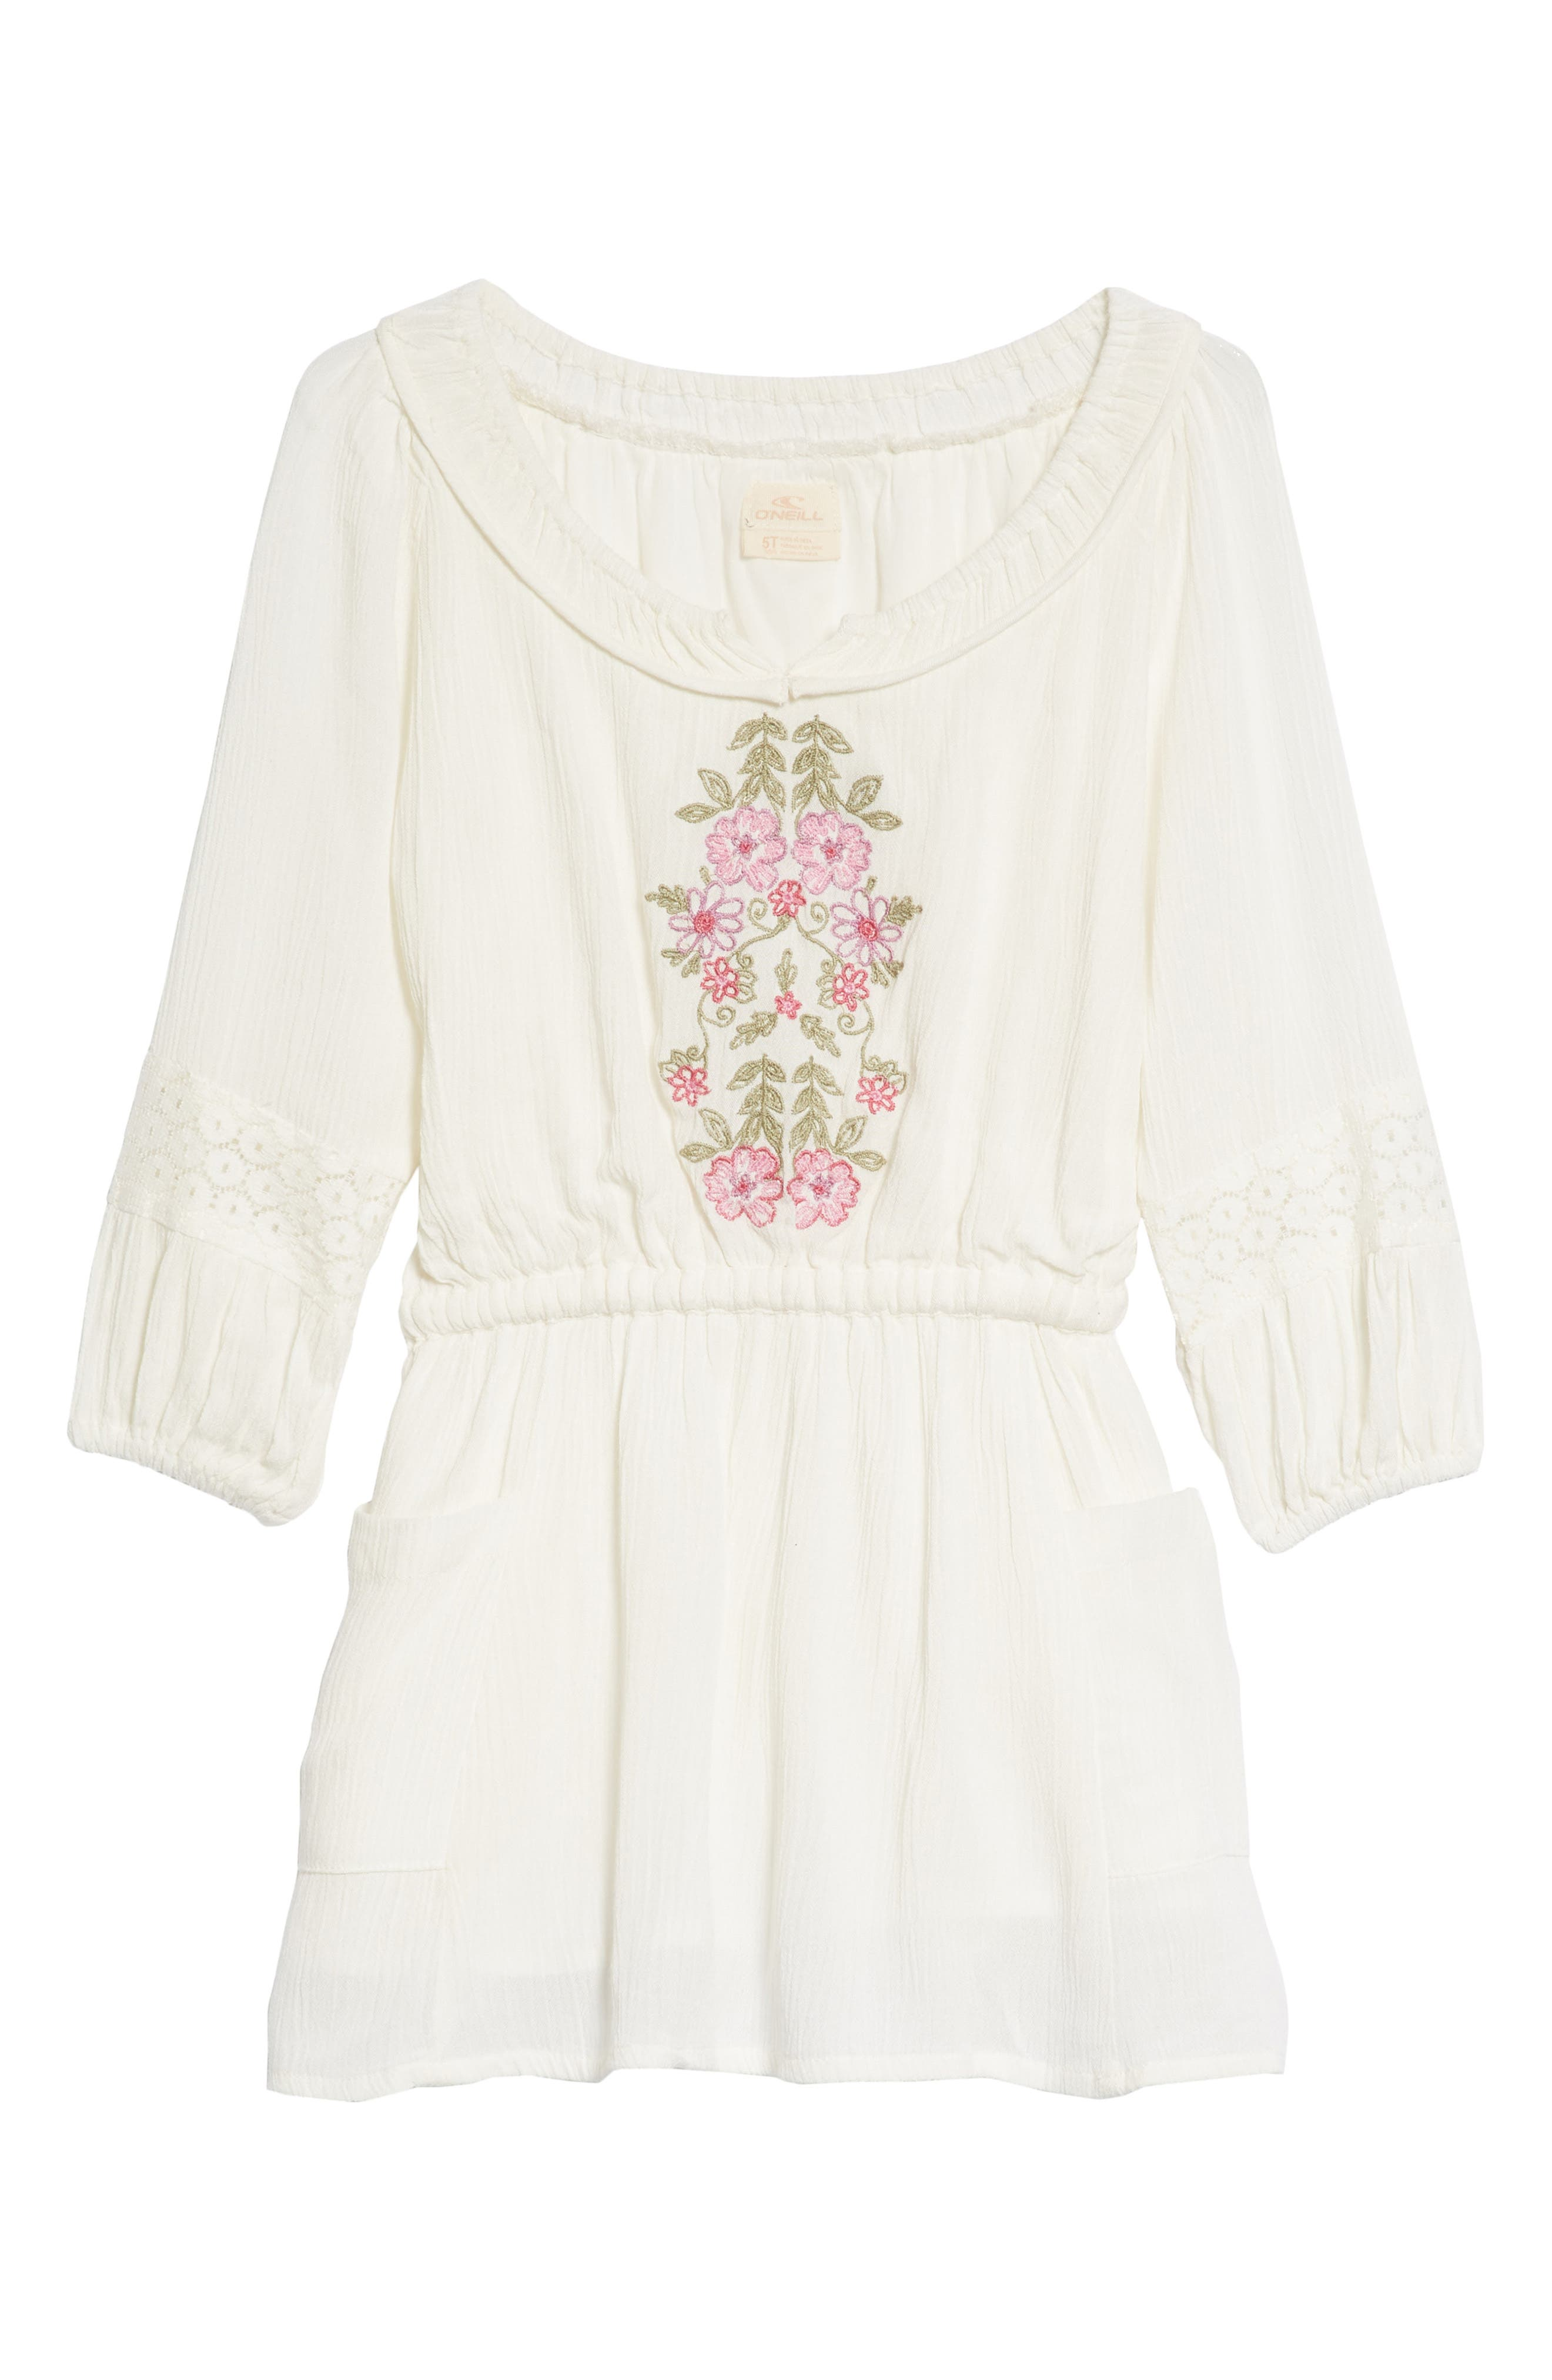 Malina Floral Embroidered Dress,                         Main,                         color, White